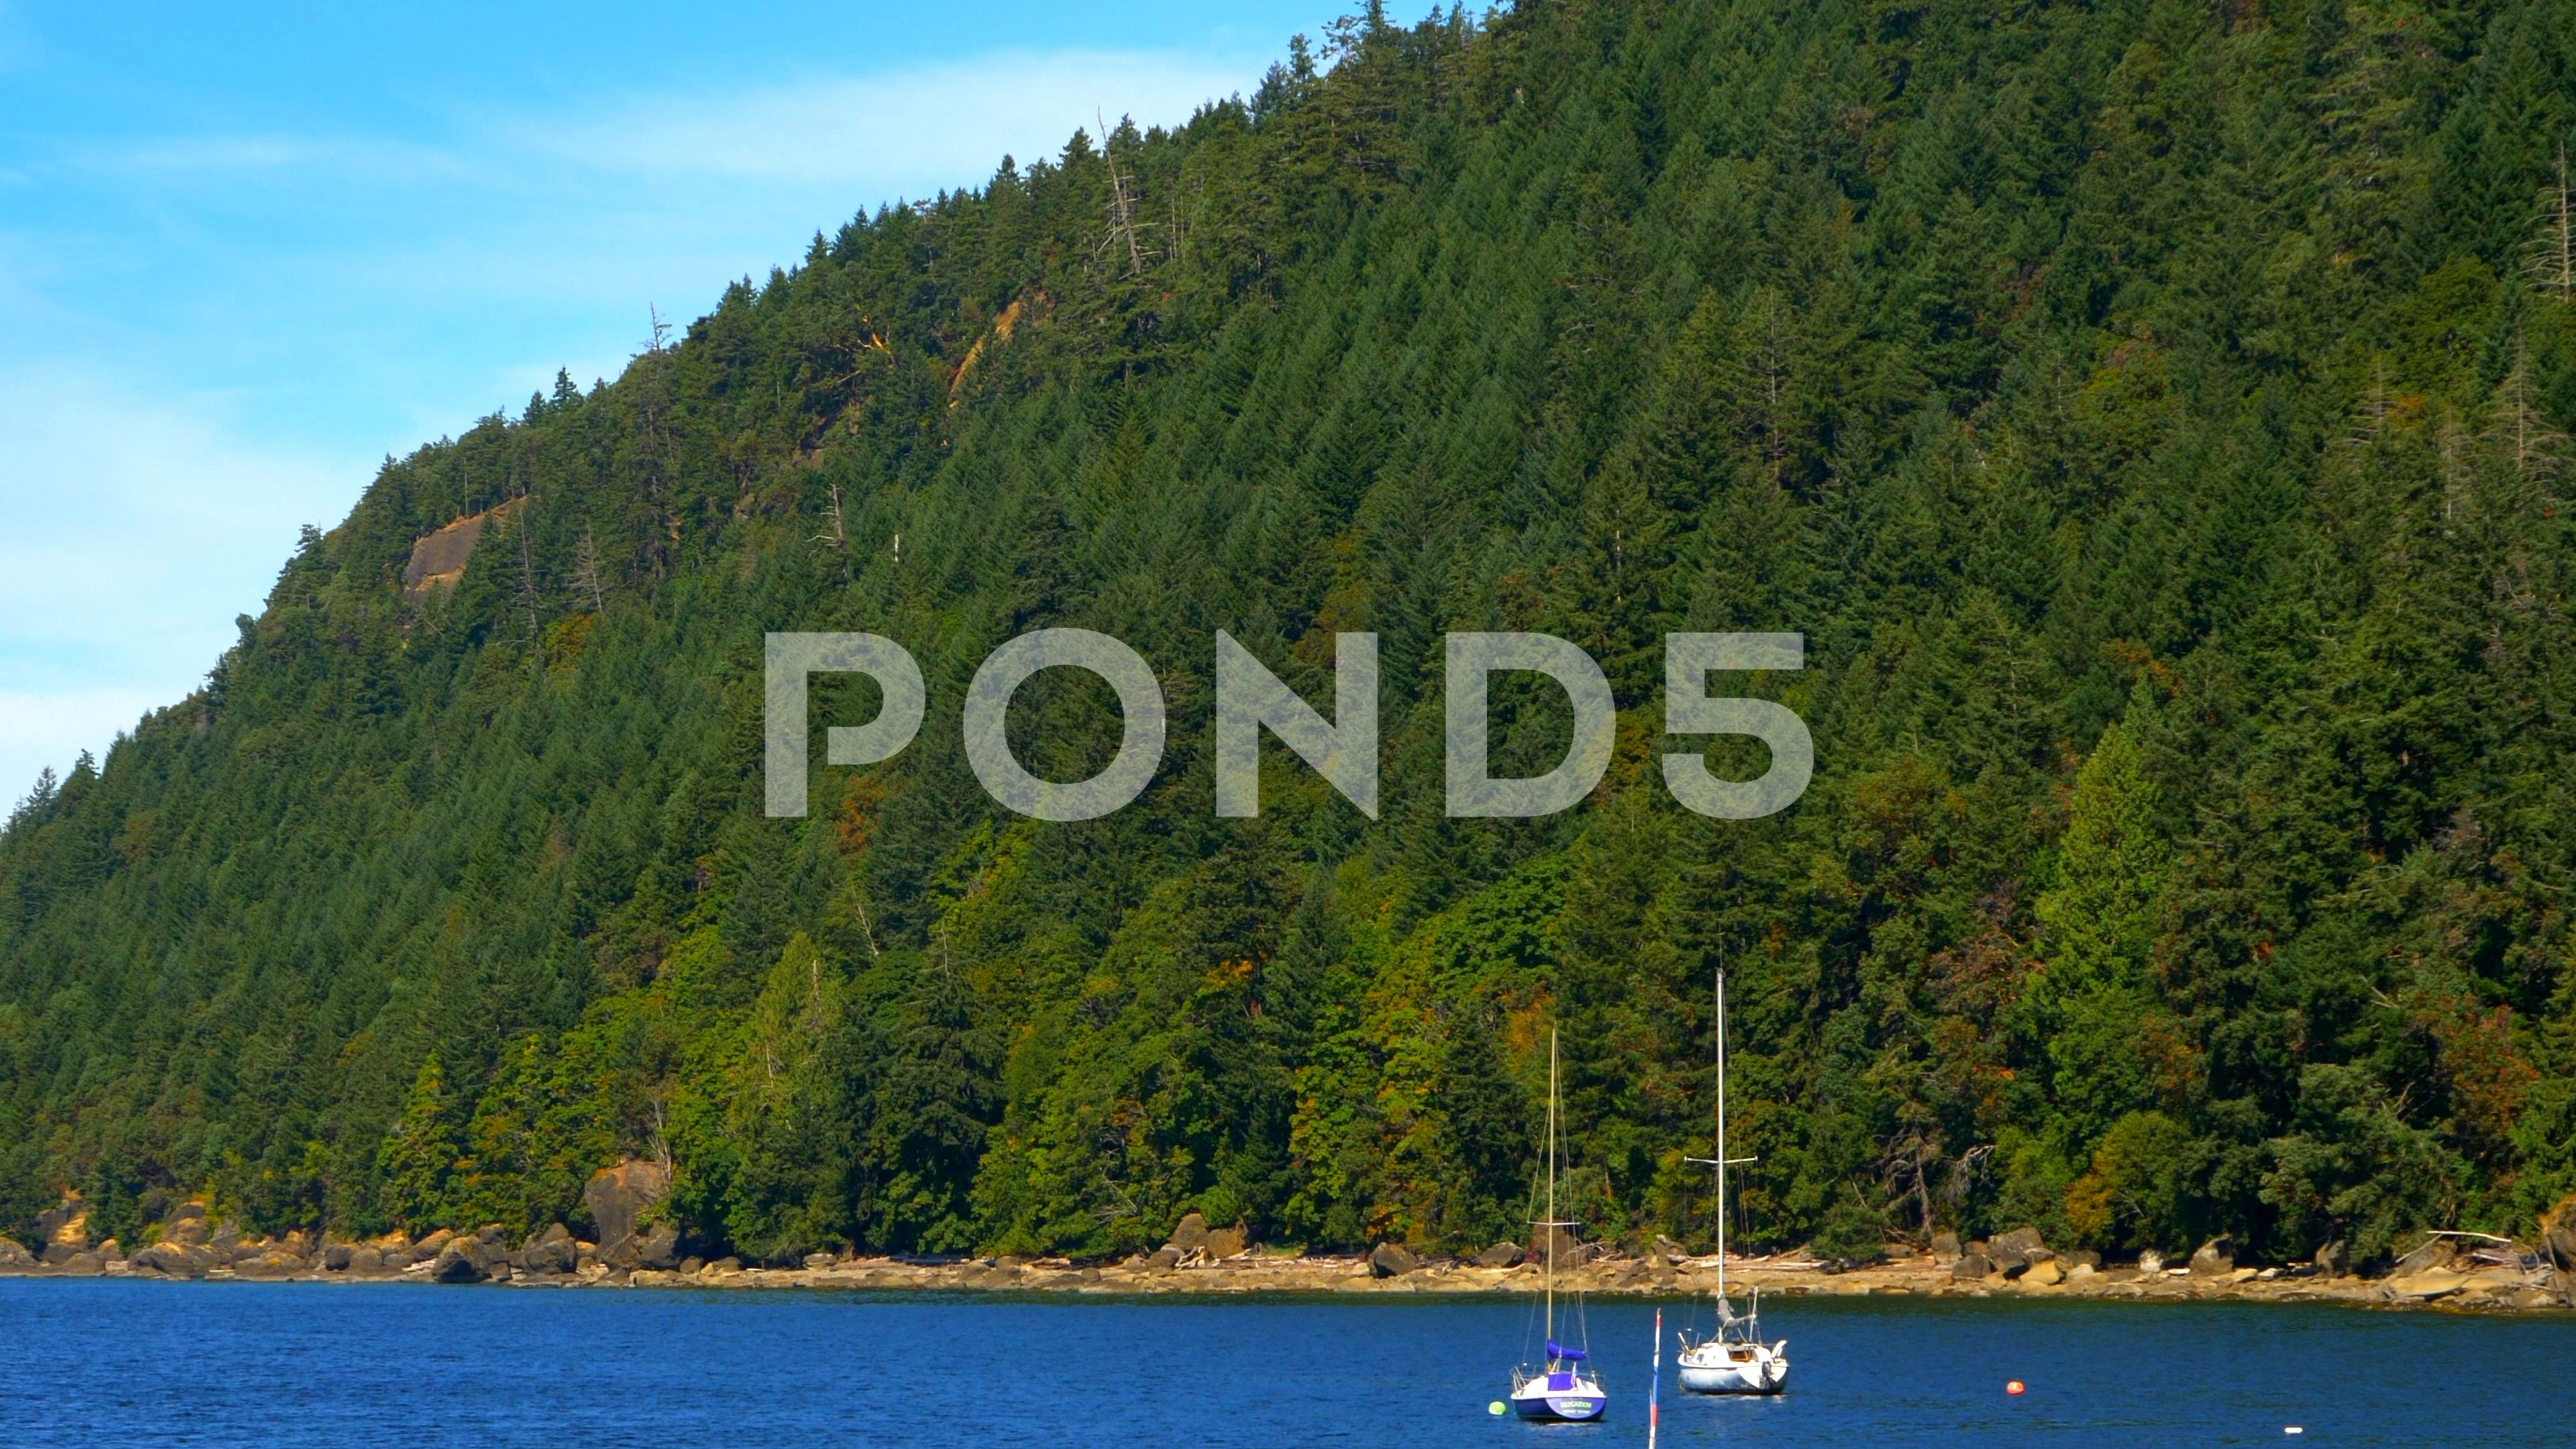 4k Harbor Islands Water And Forest Hill Nature Beach Landscape Sail Boats Stock Footage Forest Hill Nature Harbor Nature Beach Harbor Island Beach Landscape